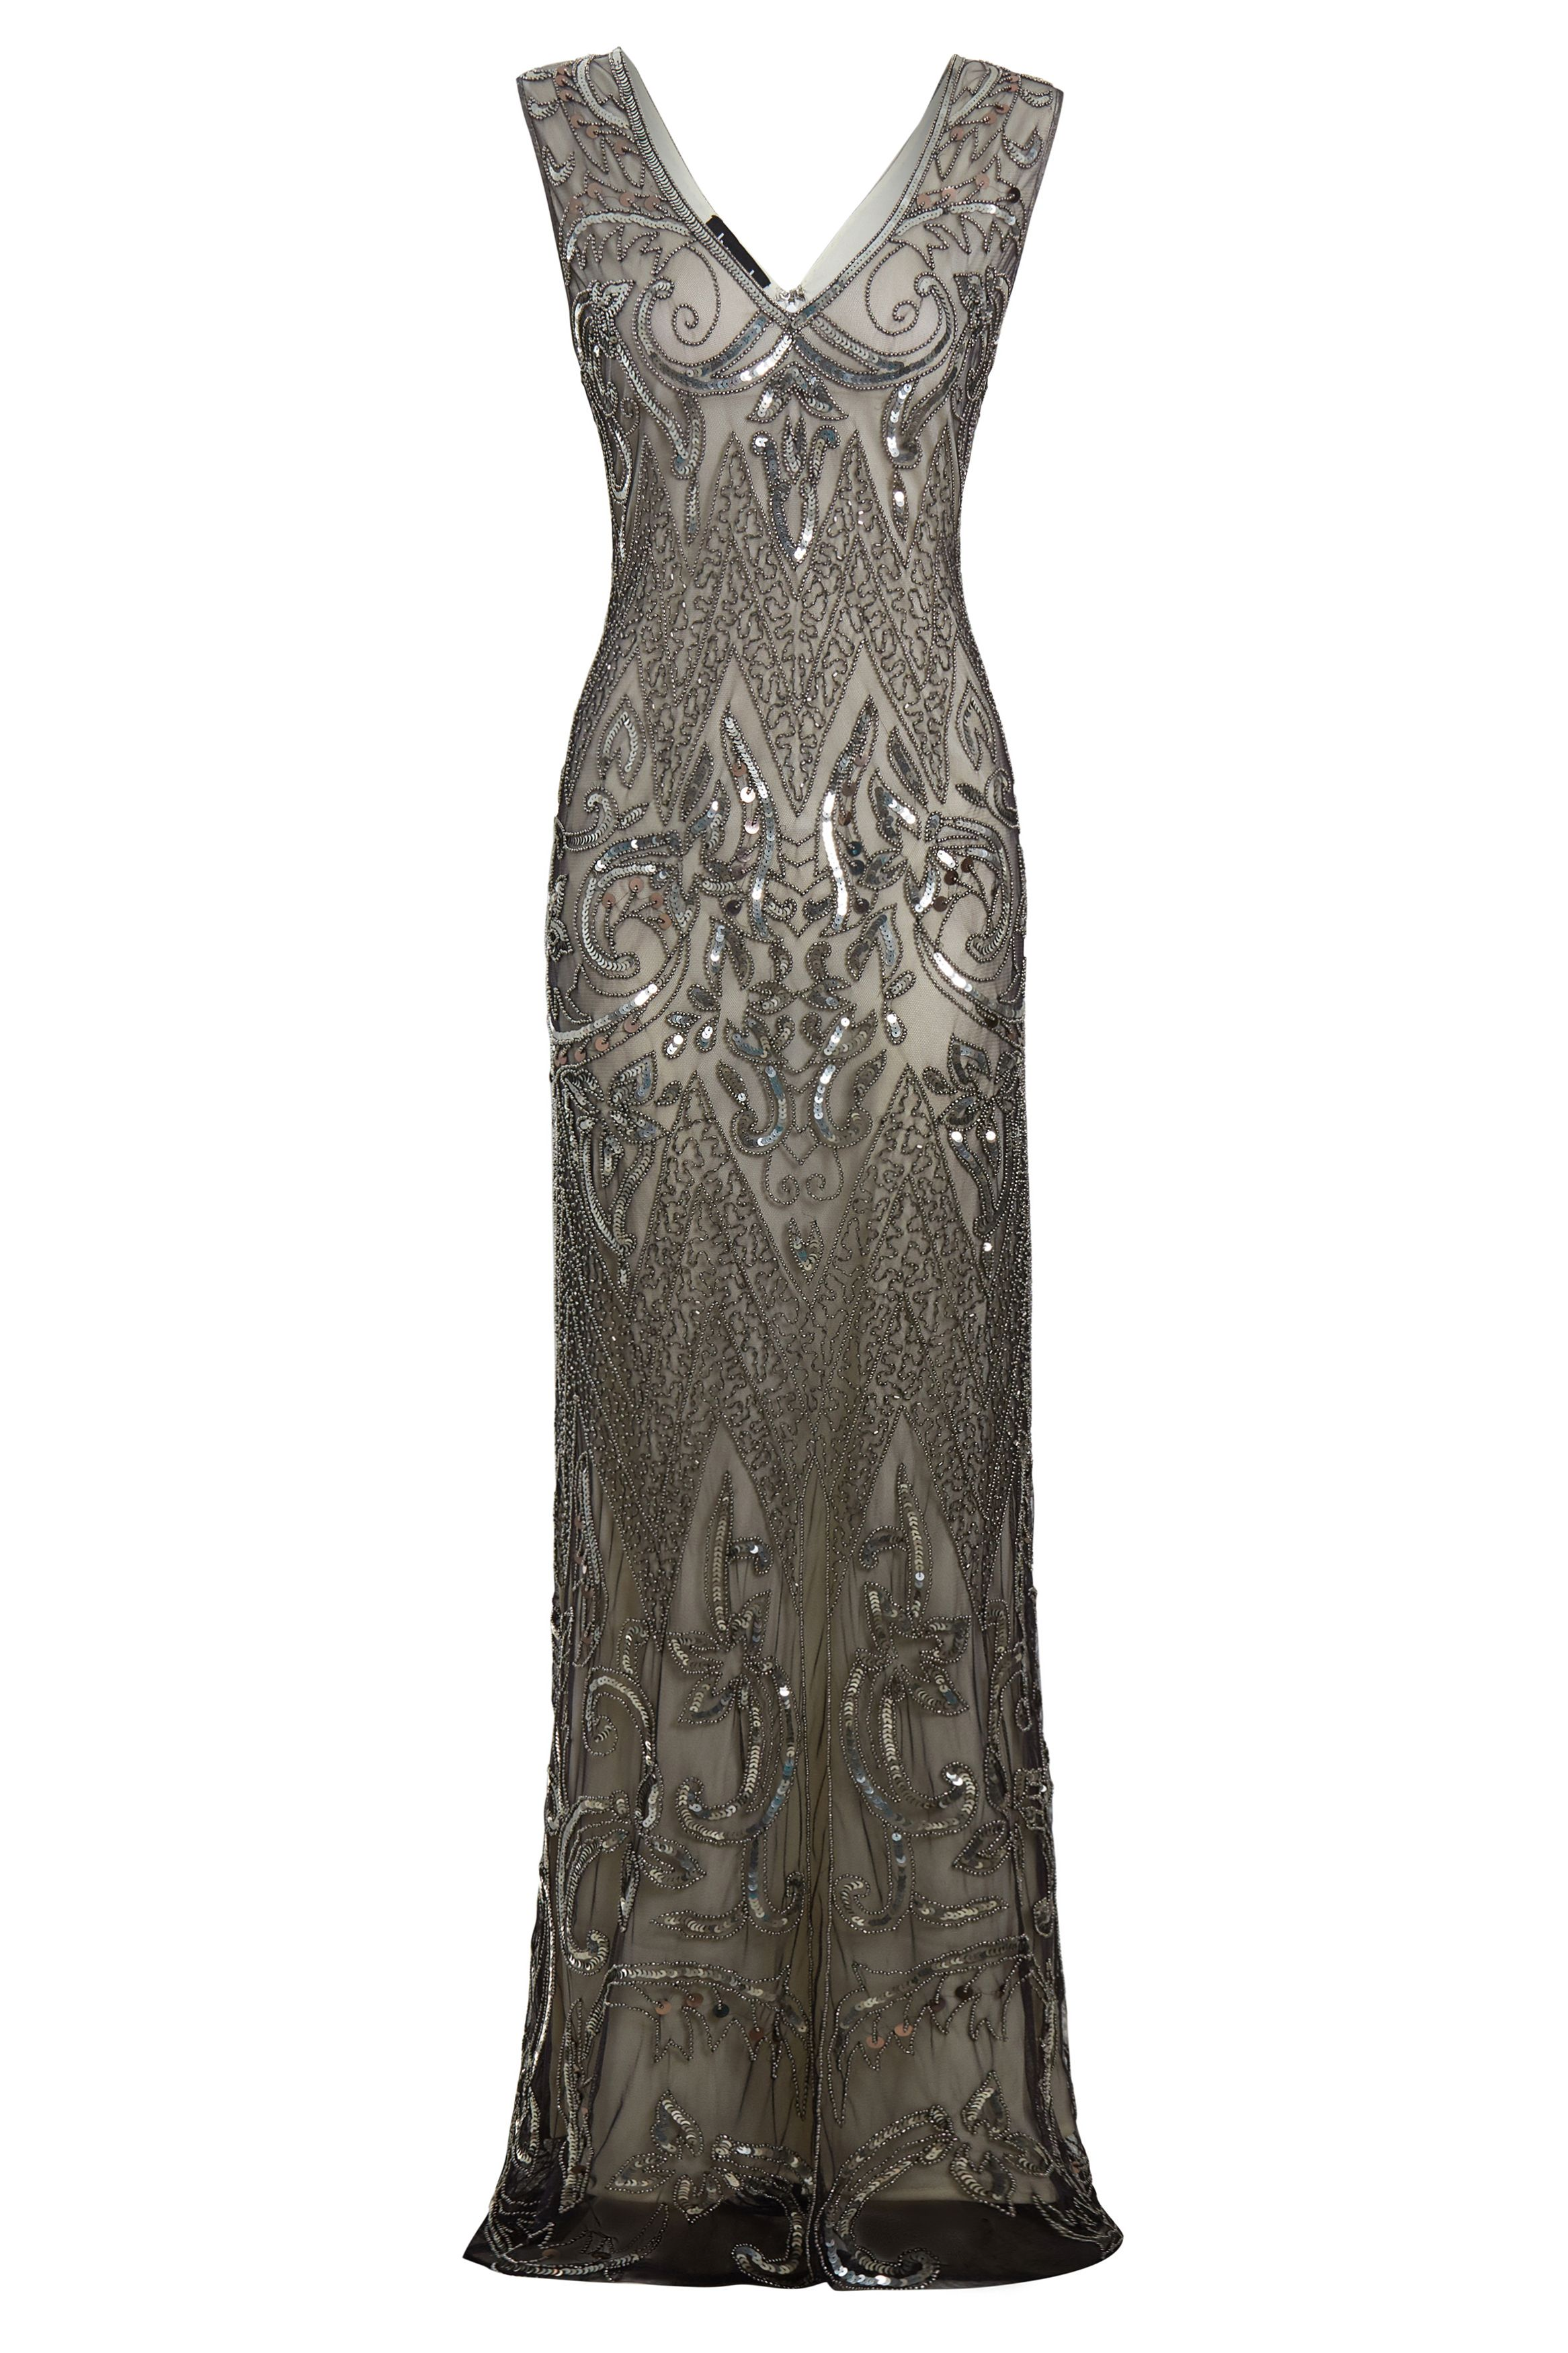 525257b5ba Angie Embellished Flapper, 1920s Great Gatsby Inspired, Art Deco ...